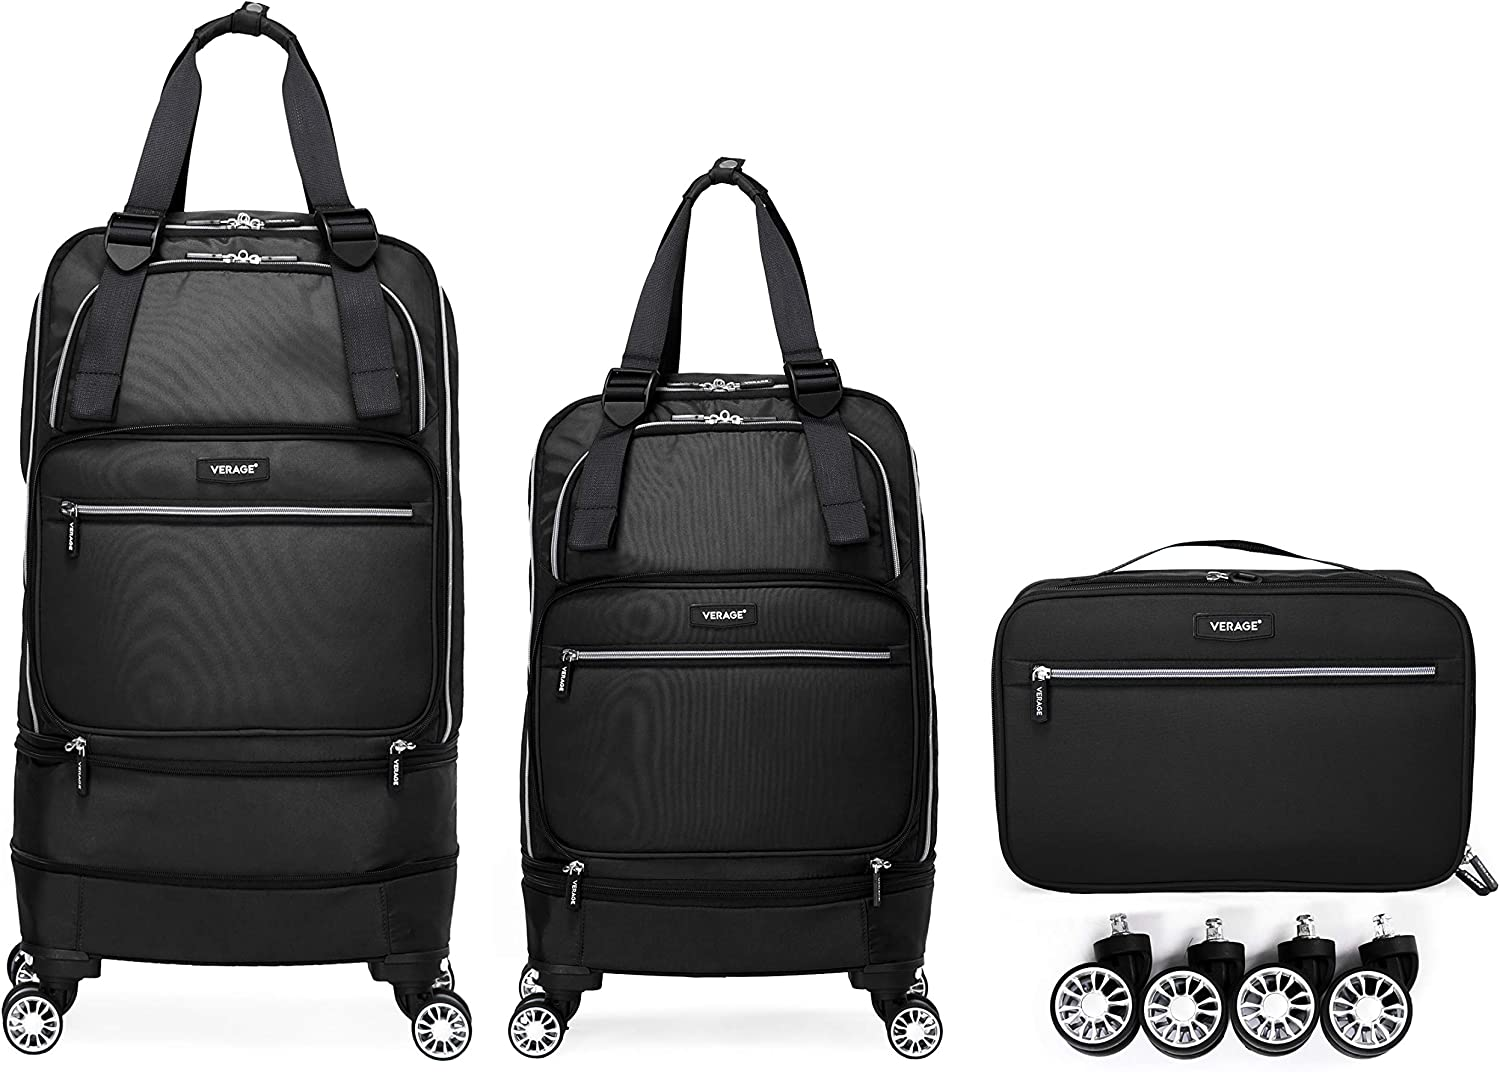 Foldable Luggage Bag with Spinner wheels,Expandable Collapsible Rolling Duffel Bag,Carry On Luggage 22x14x9/Checked Luggage for Travel (2 in 1), Black